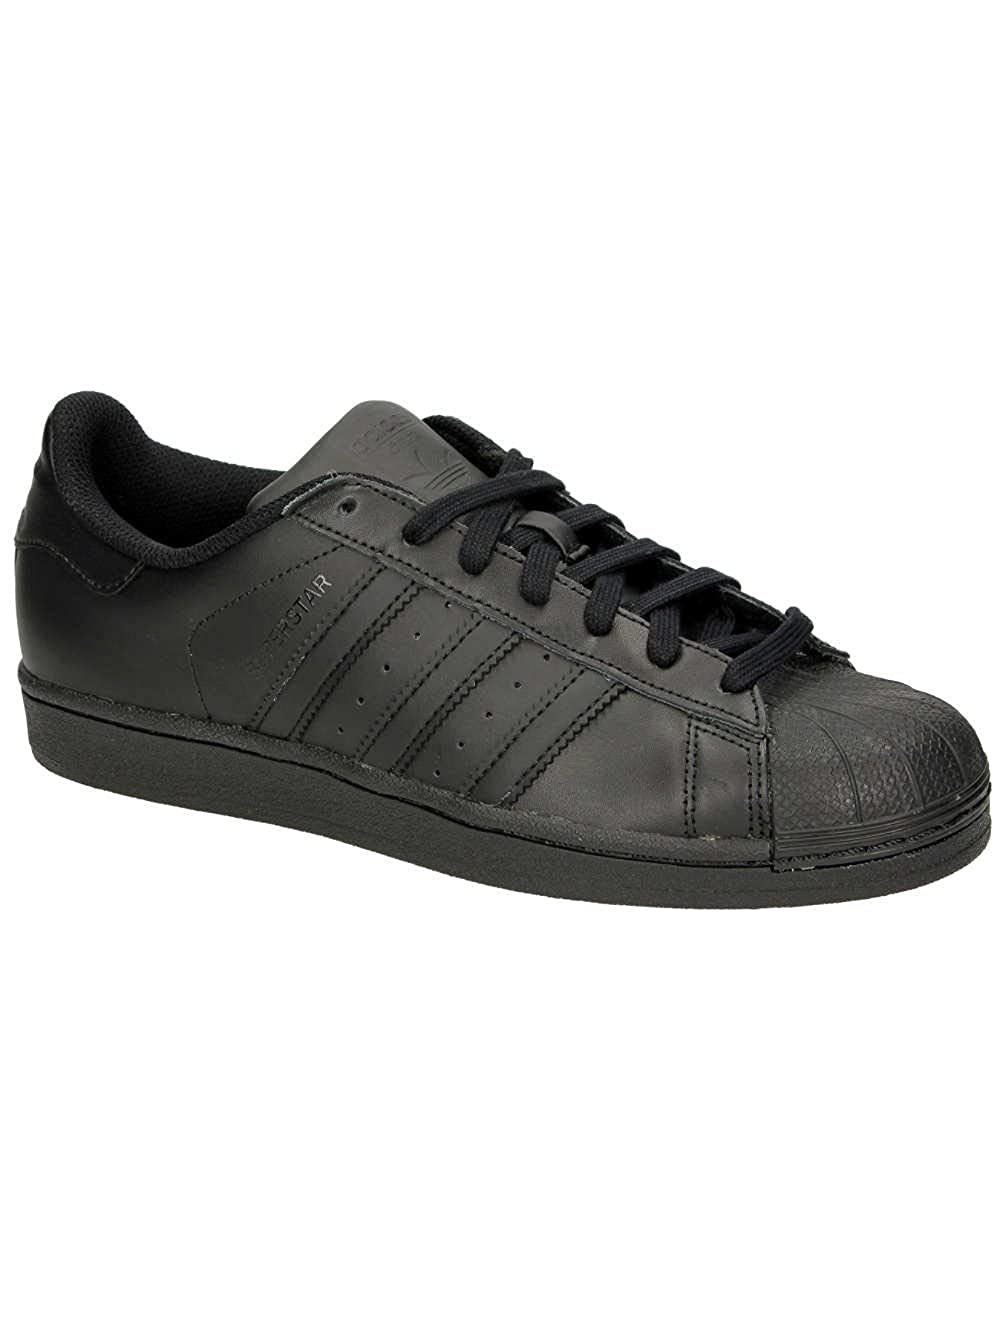 Adidas Originals Unisex-Kinder Superstar Foundation Foundation Foundation CF C Turnschuhe schwarz 490c65